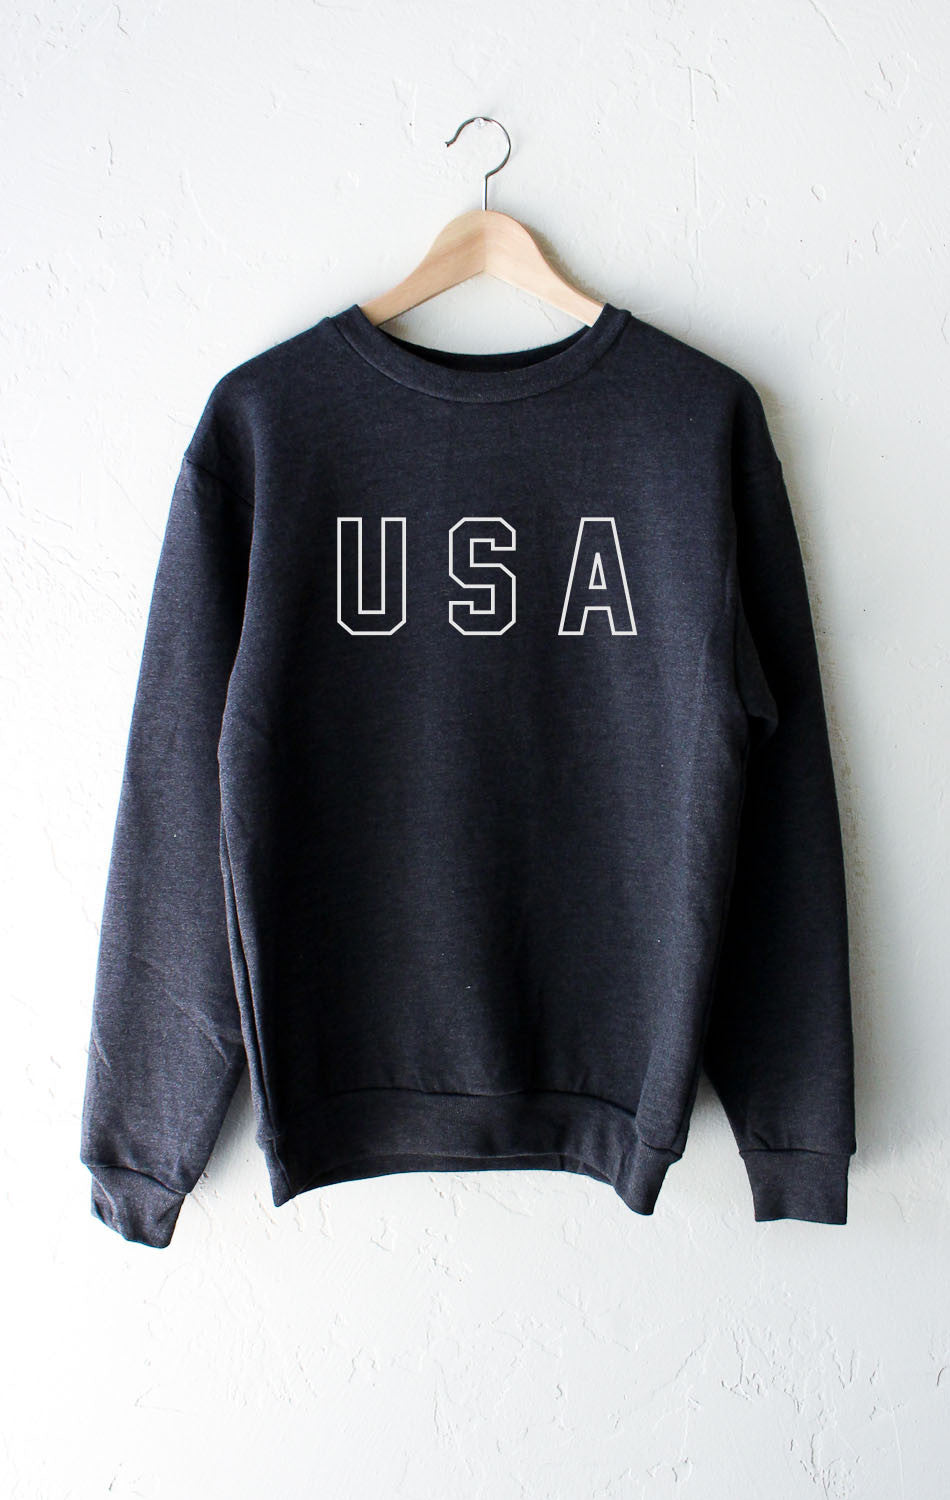 You searched for: usa sweater! Etsy is the home to thousands of handmade, vintage, and one-of-a-kind products and gifts related to your search. No matter what you're looking for or where you are in the world, our global marketplace of sellers can help you find unique and affordable options. Let's get started!